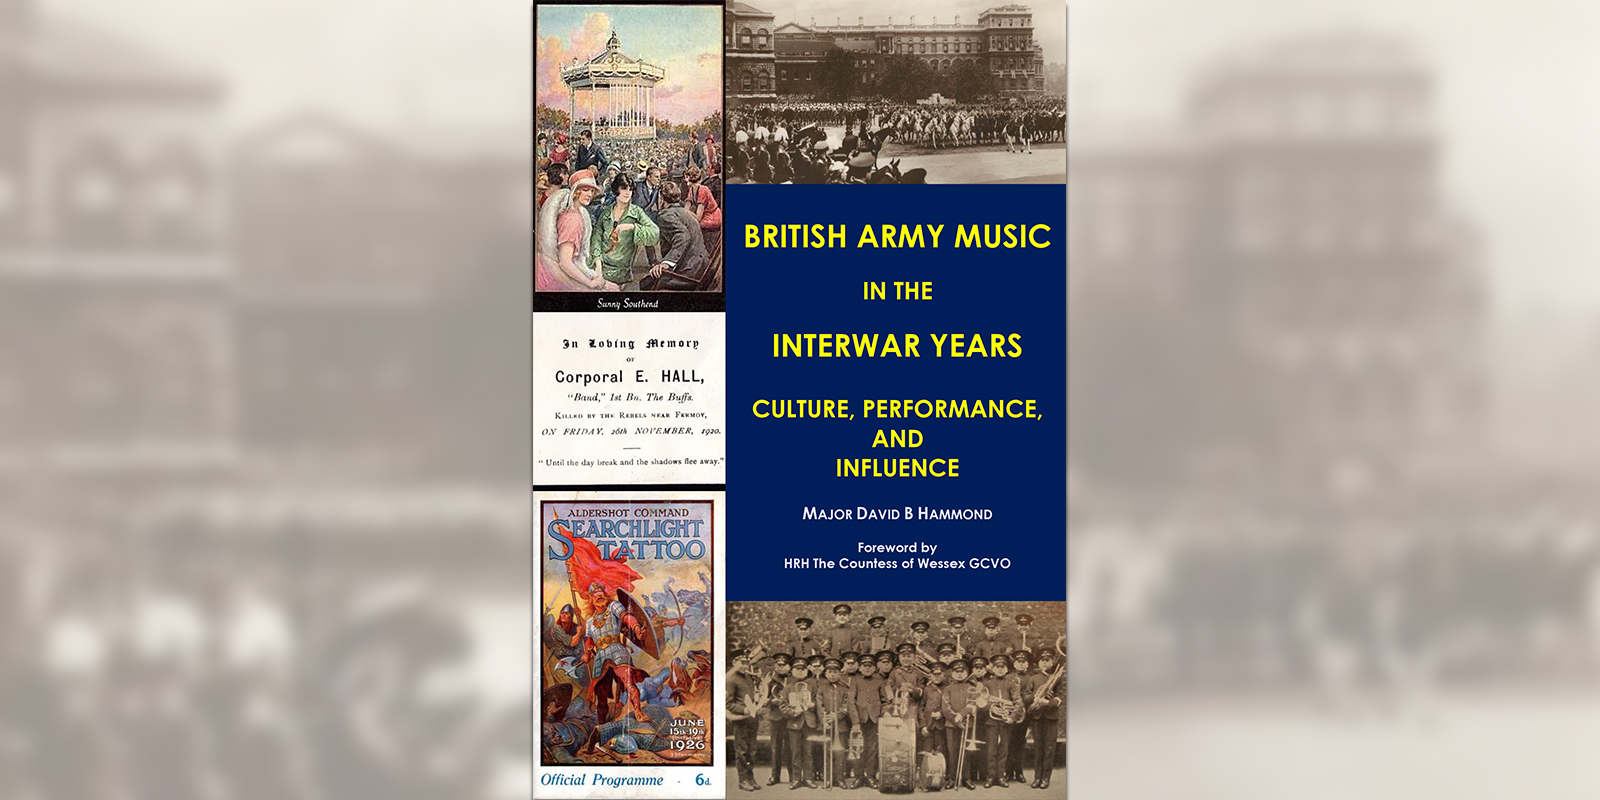 'British Army Music in the Interwar Years' book cover